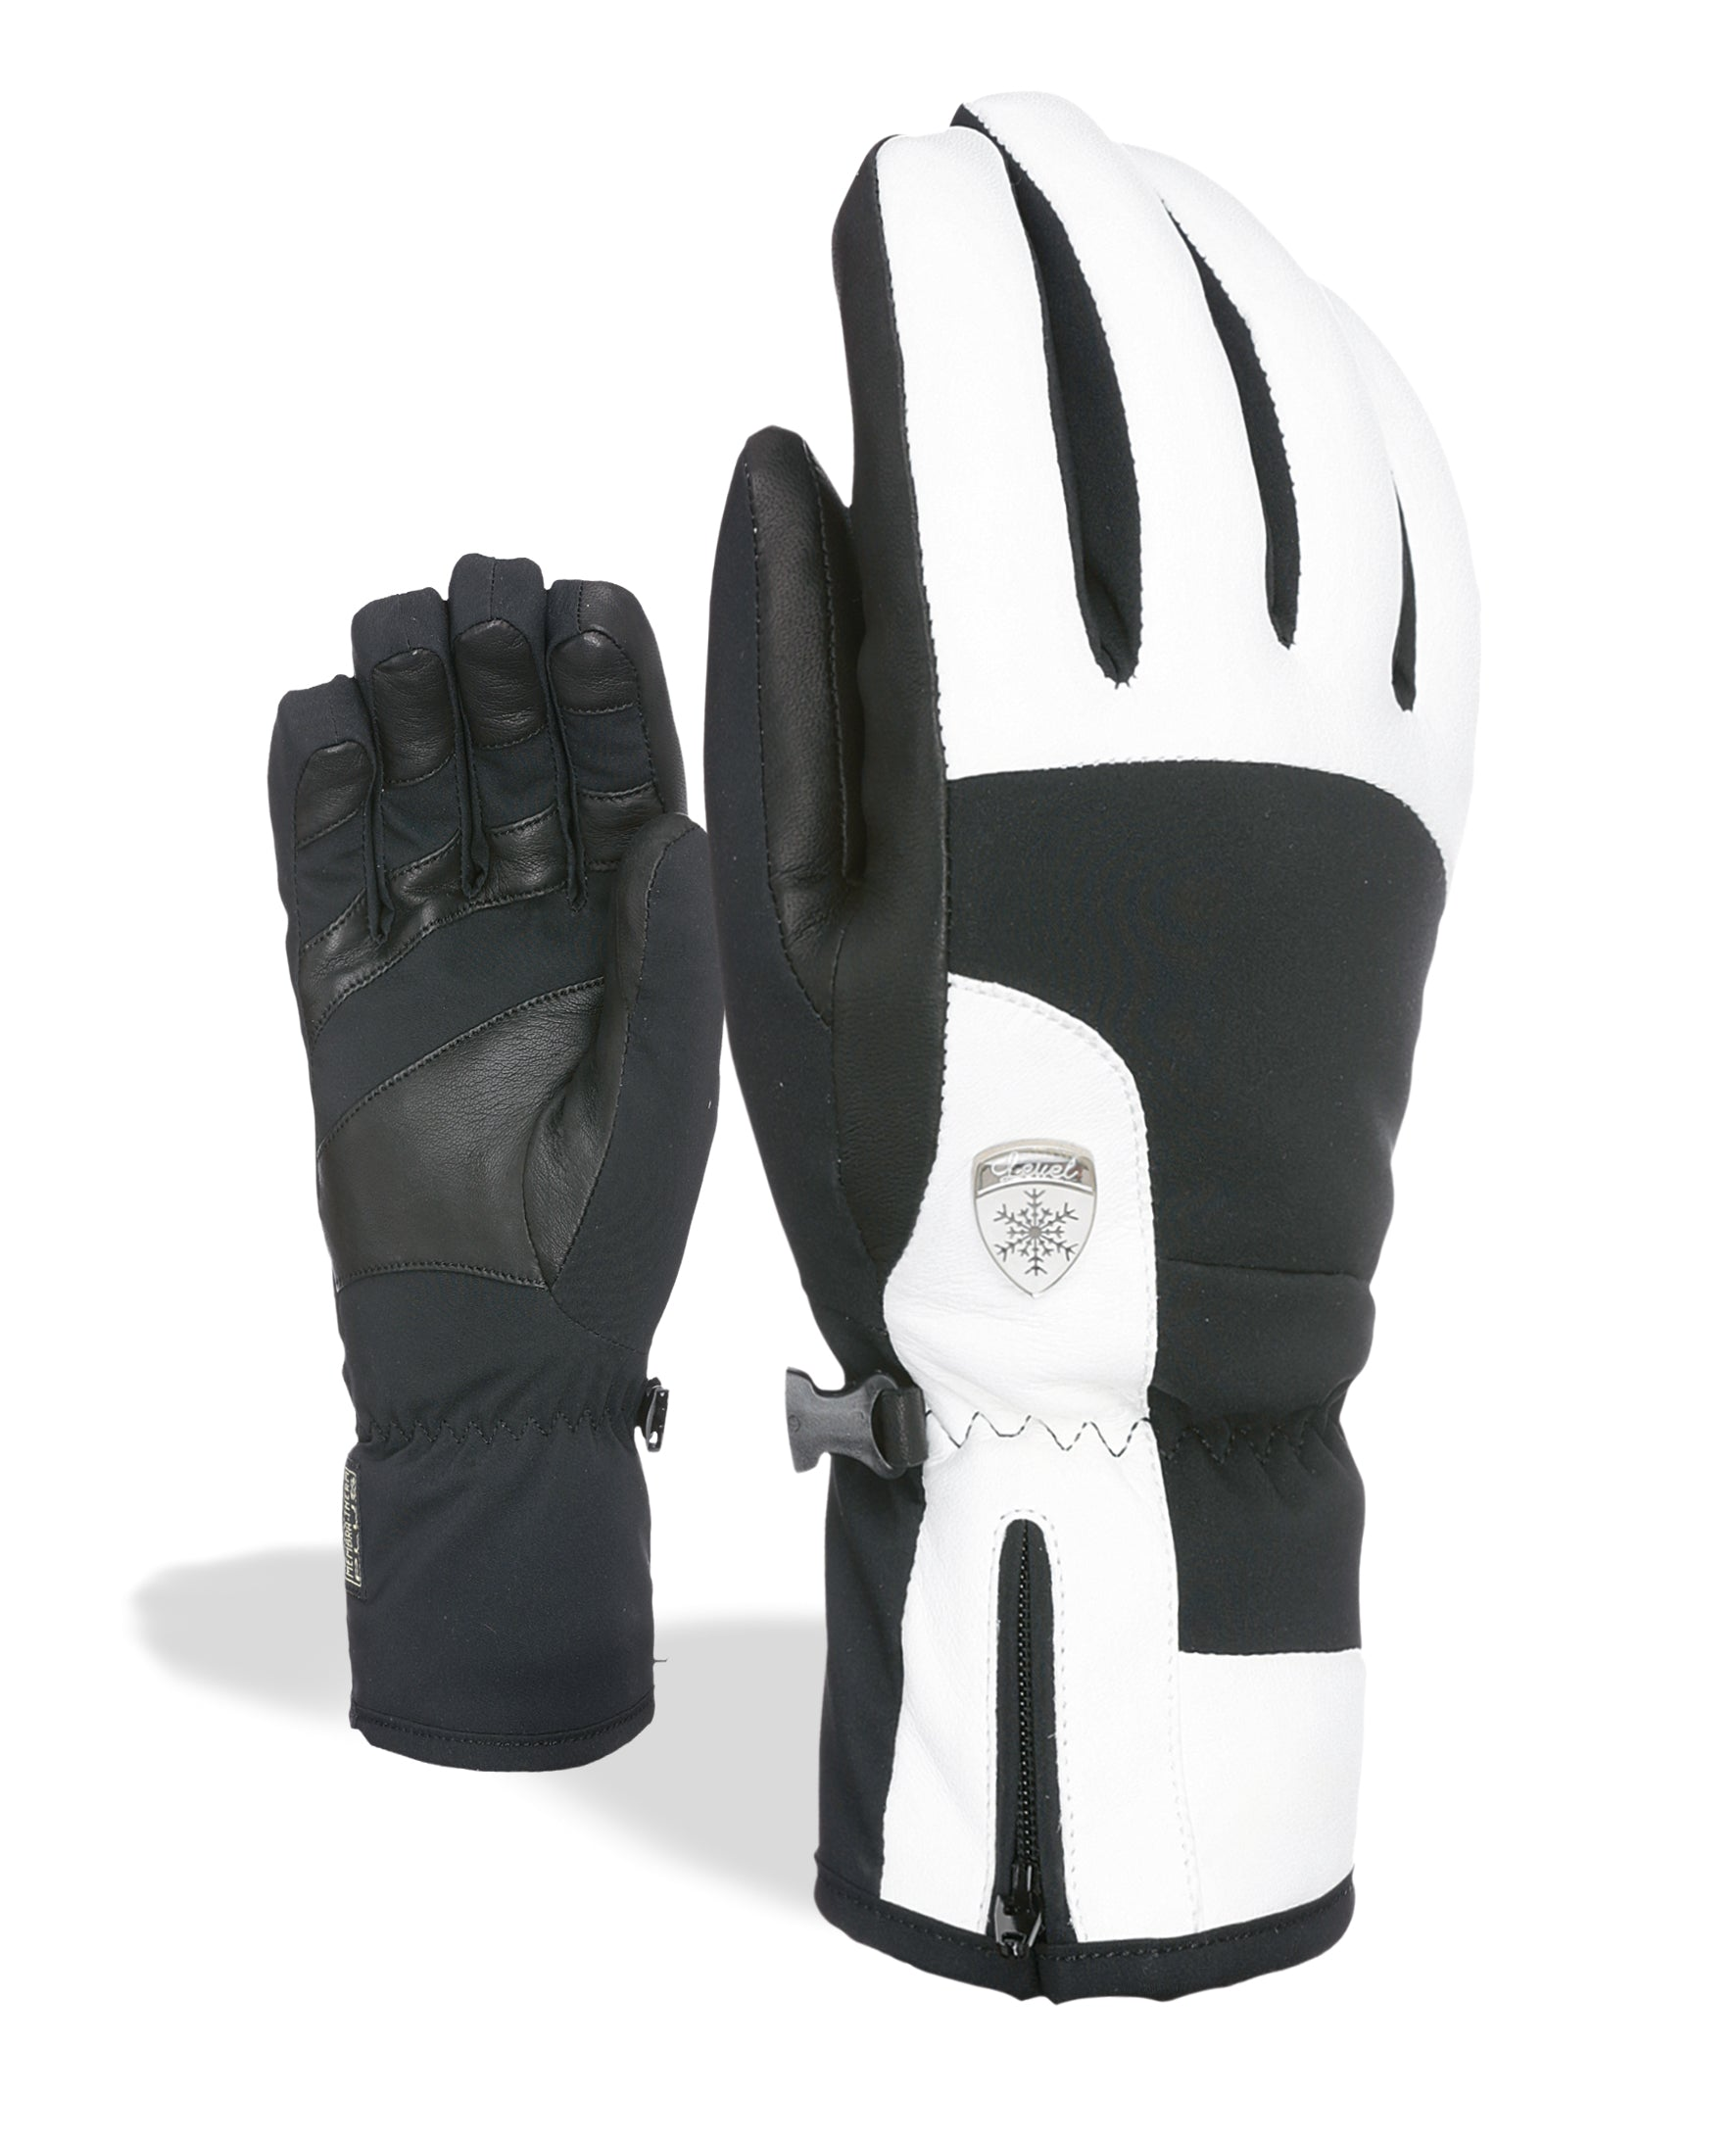 Iris Women's Skiing Glove